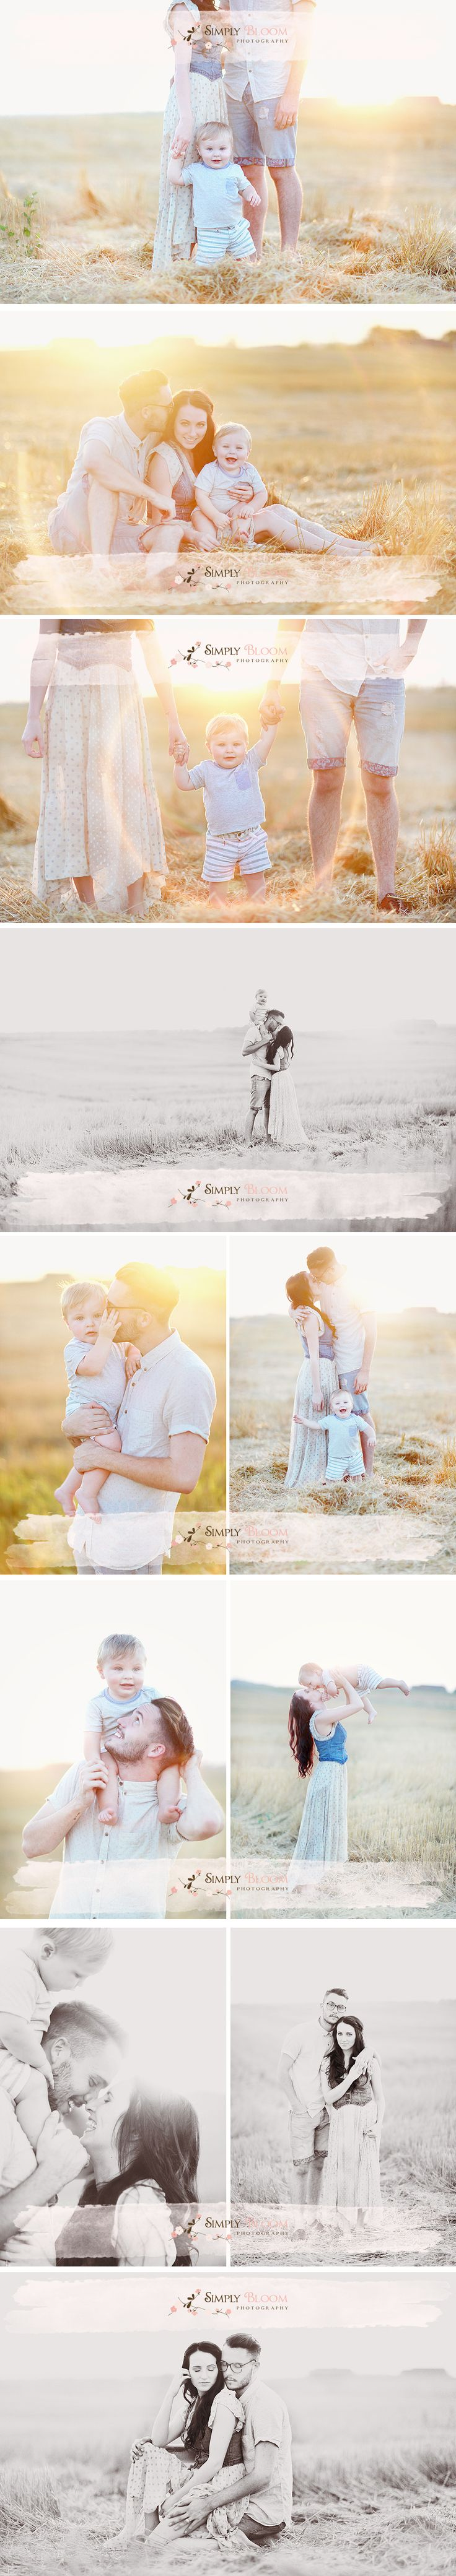 huntsville alabama family photography